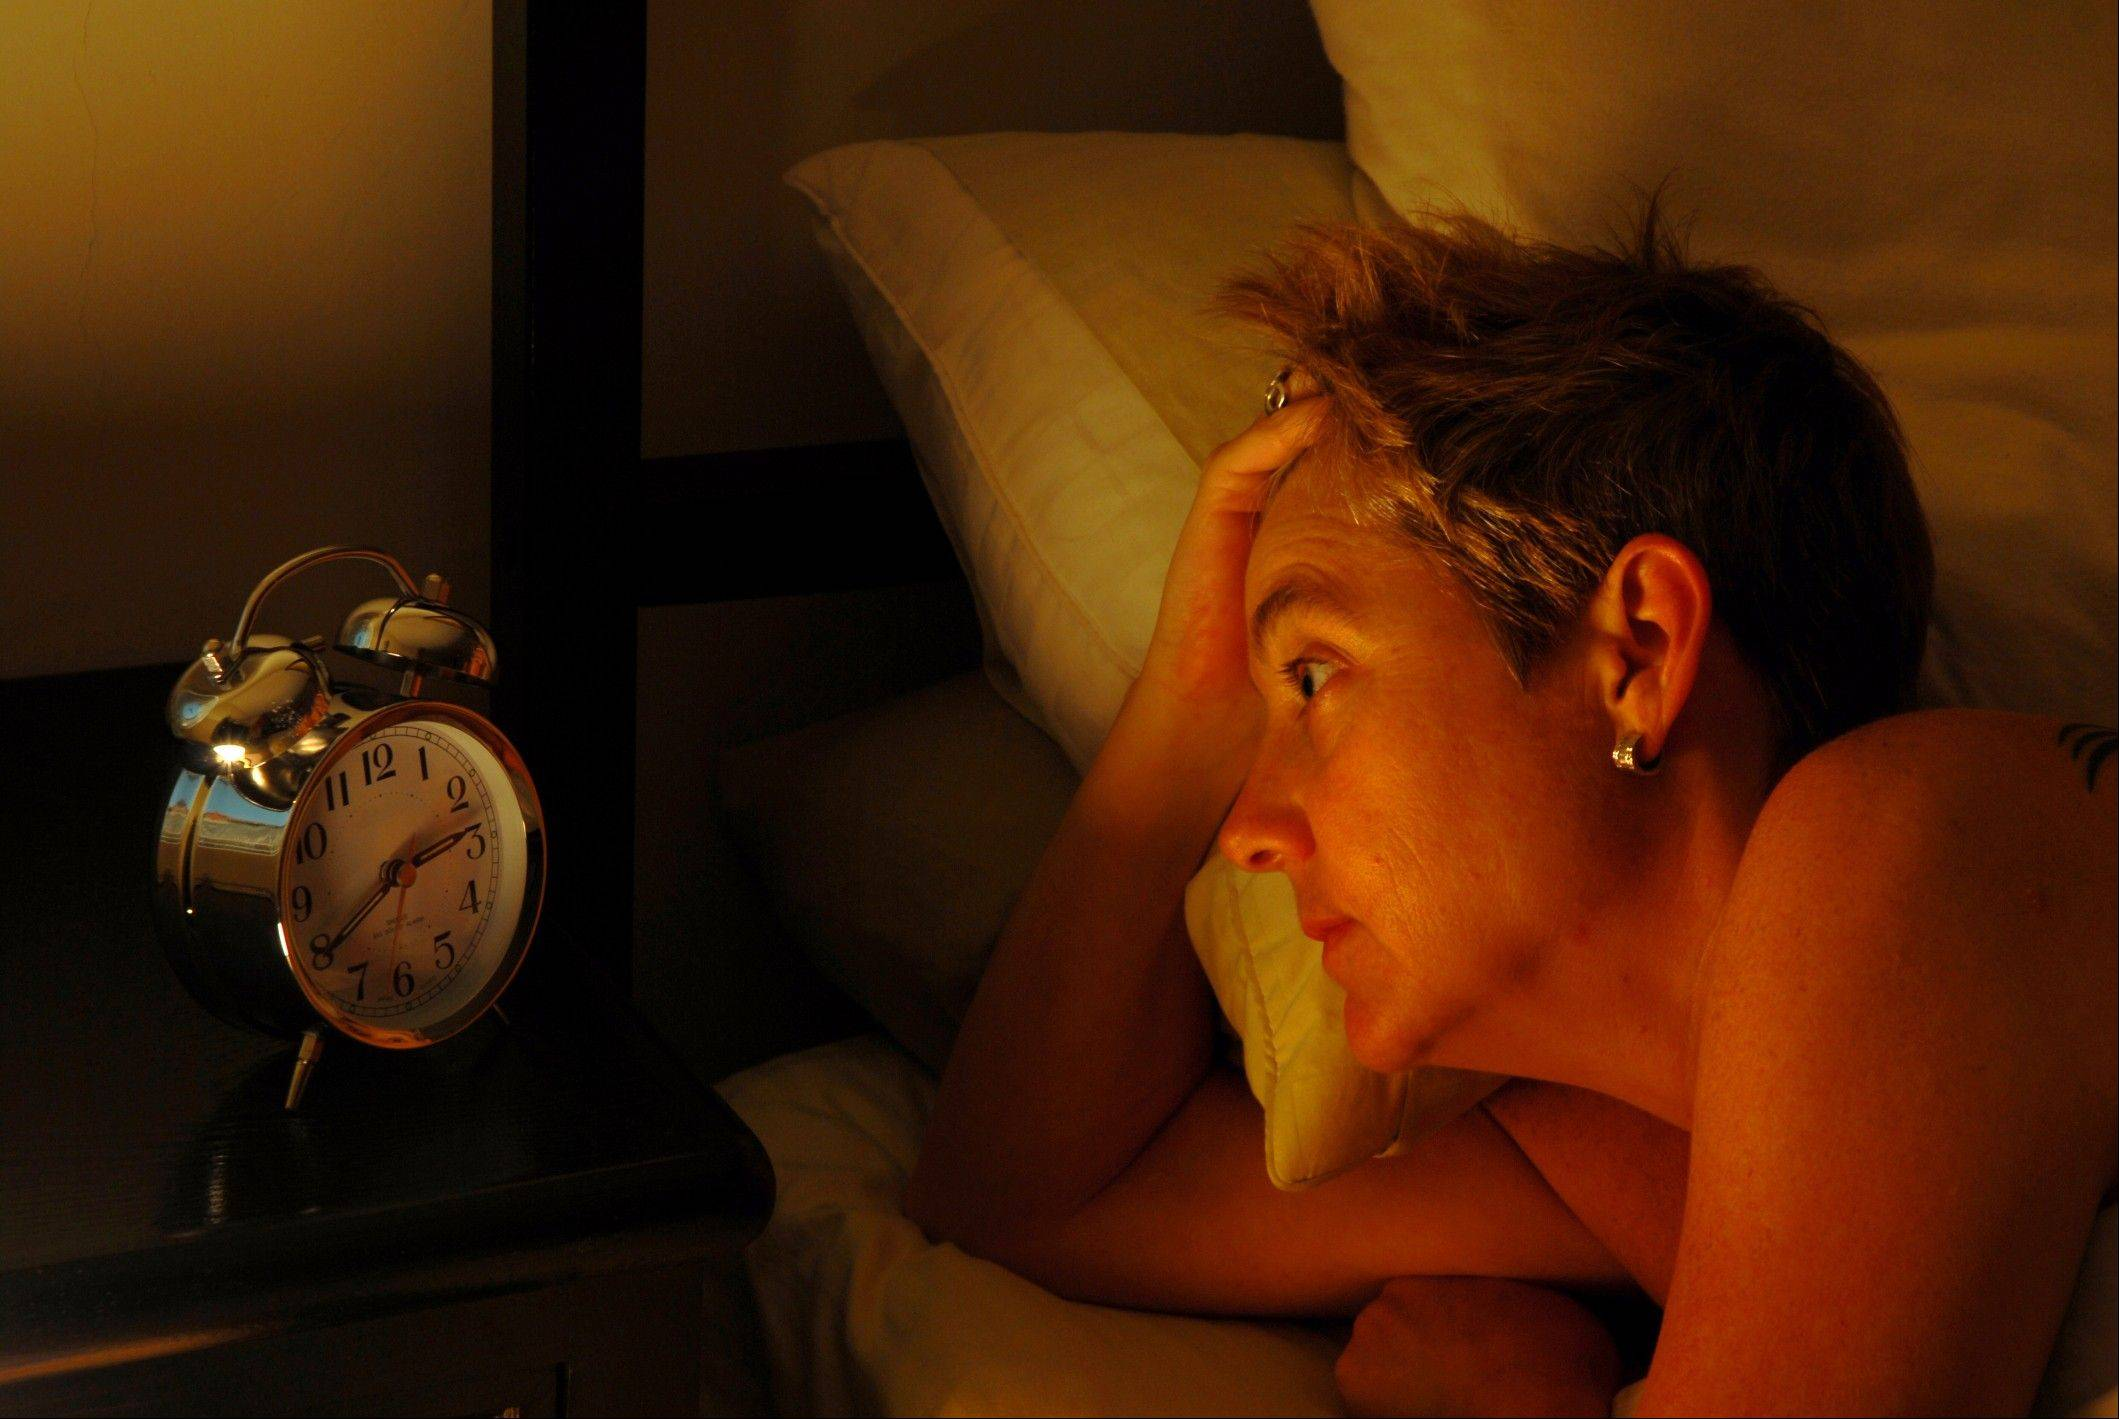 Can't fall asleep? Over-the-counter aids have a mixed record